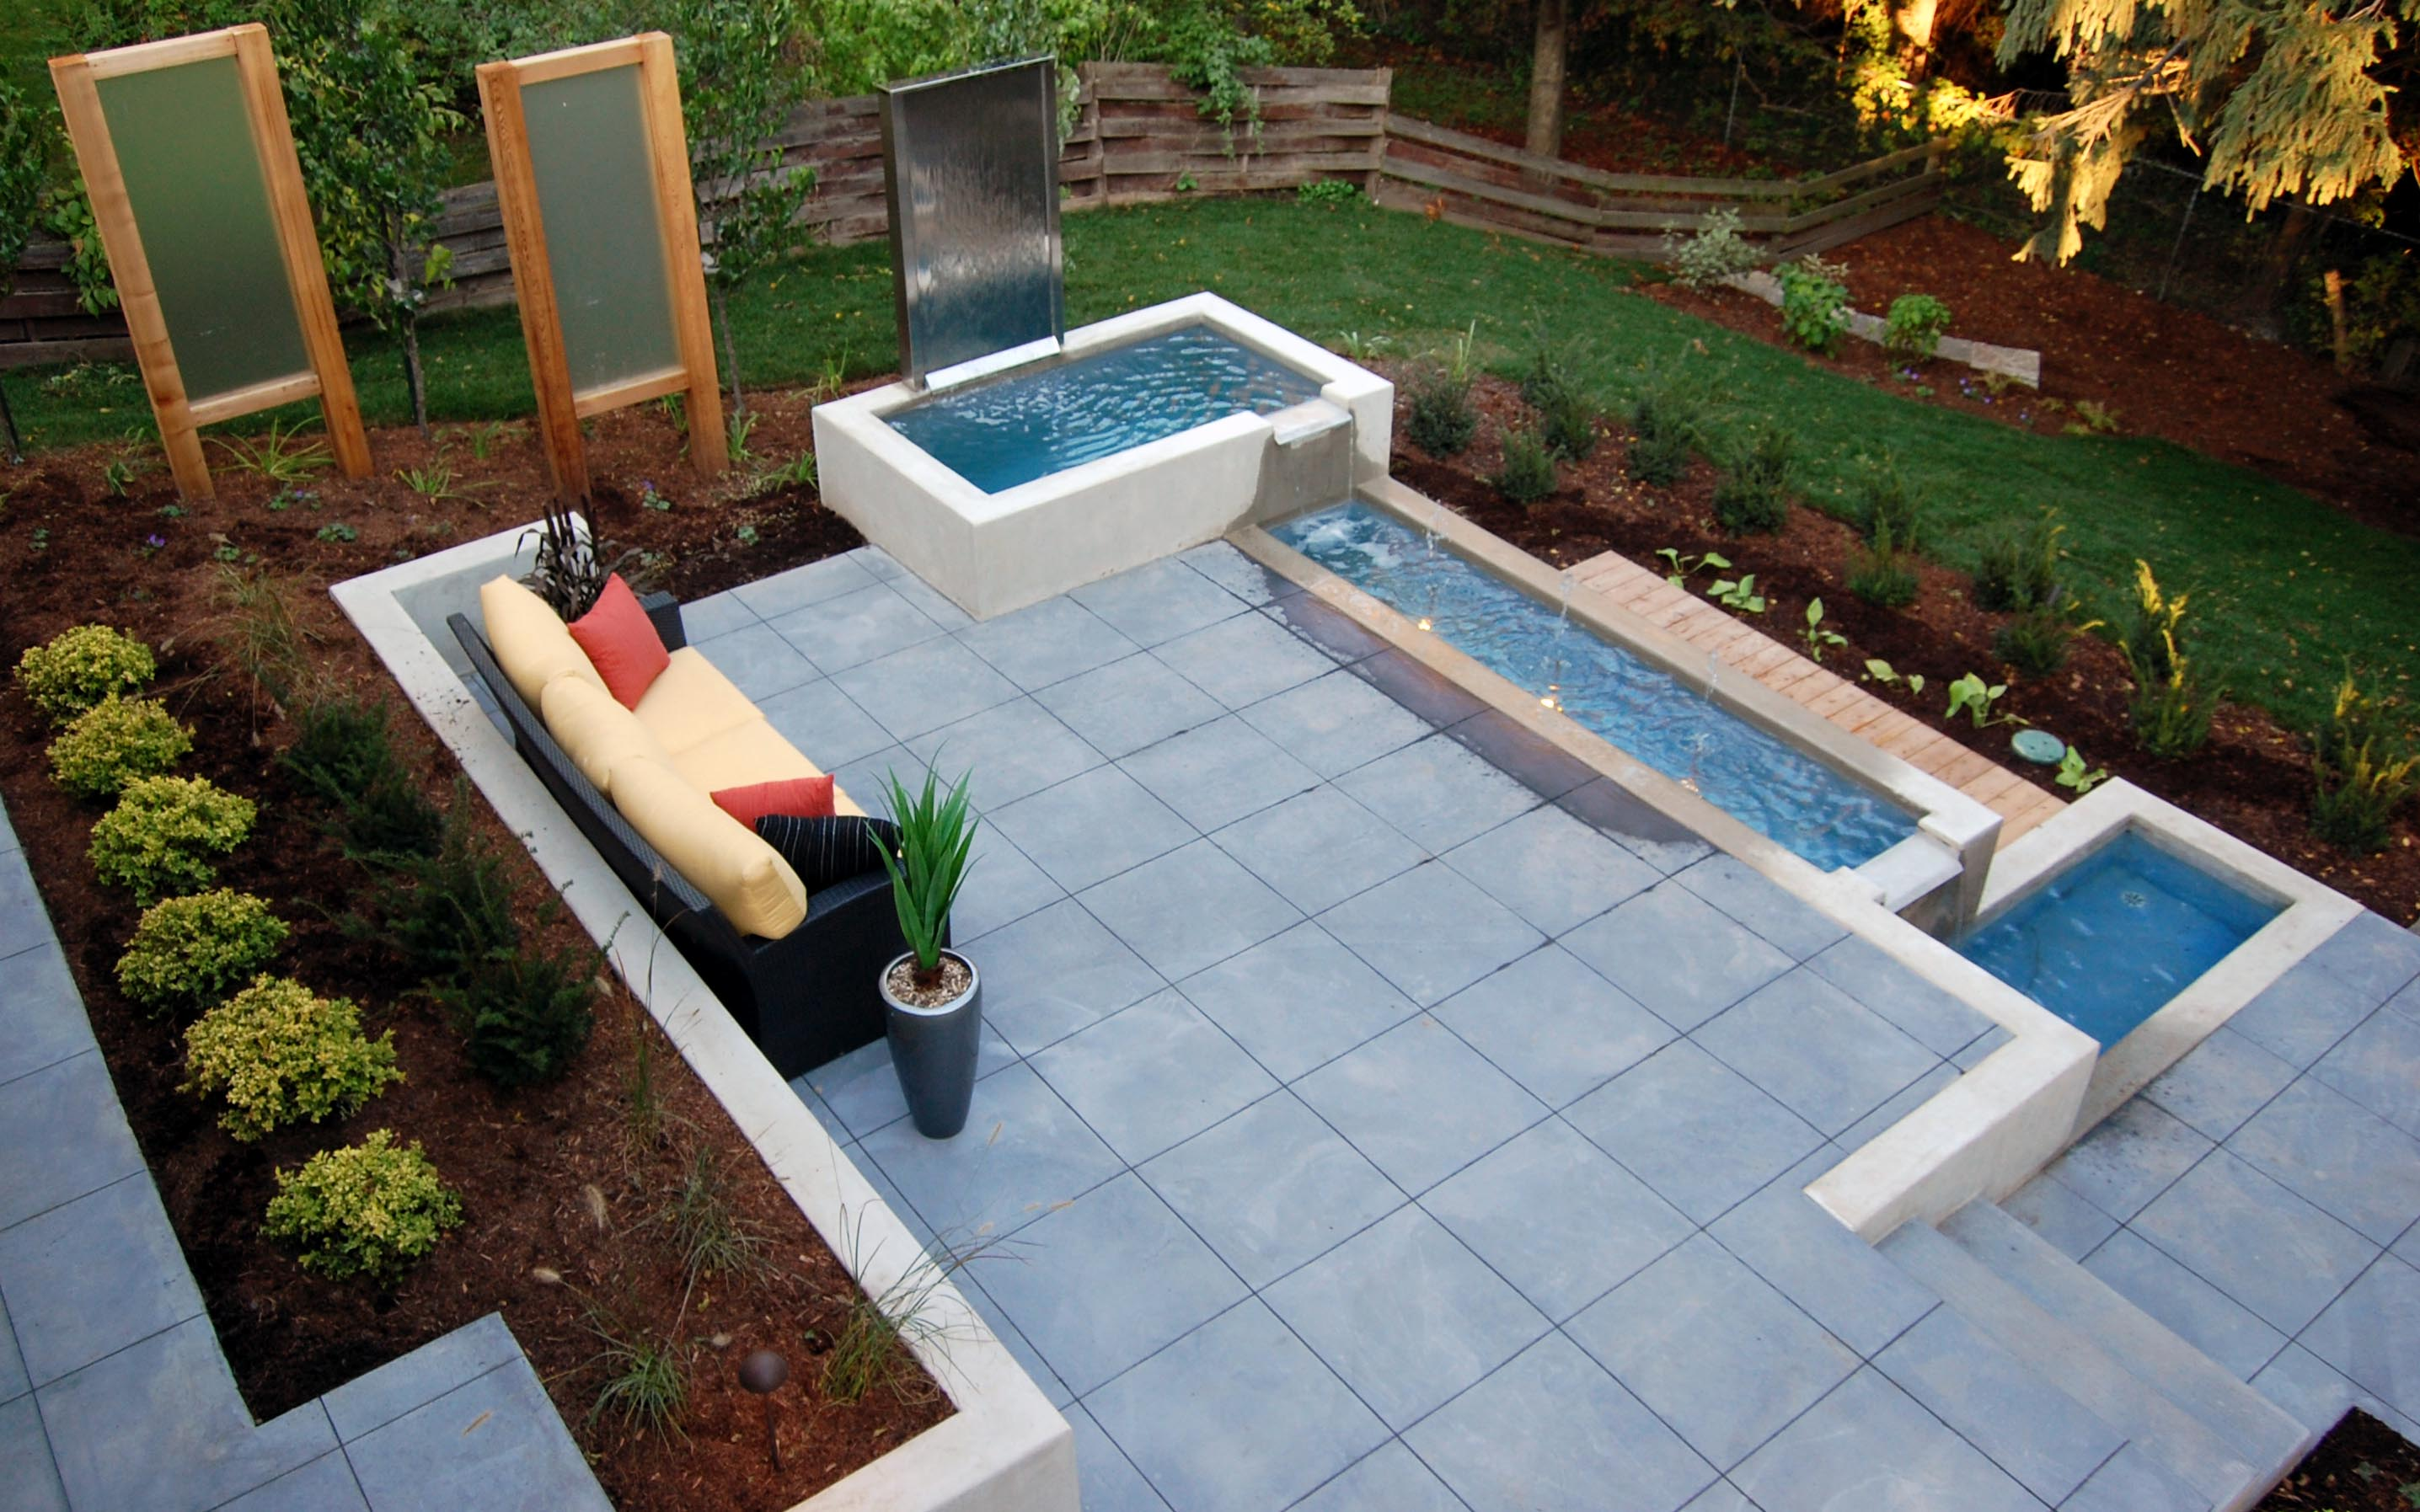 A peaceful outdoor siting area with a cement patio and a relaxing water feature.